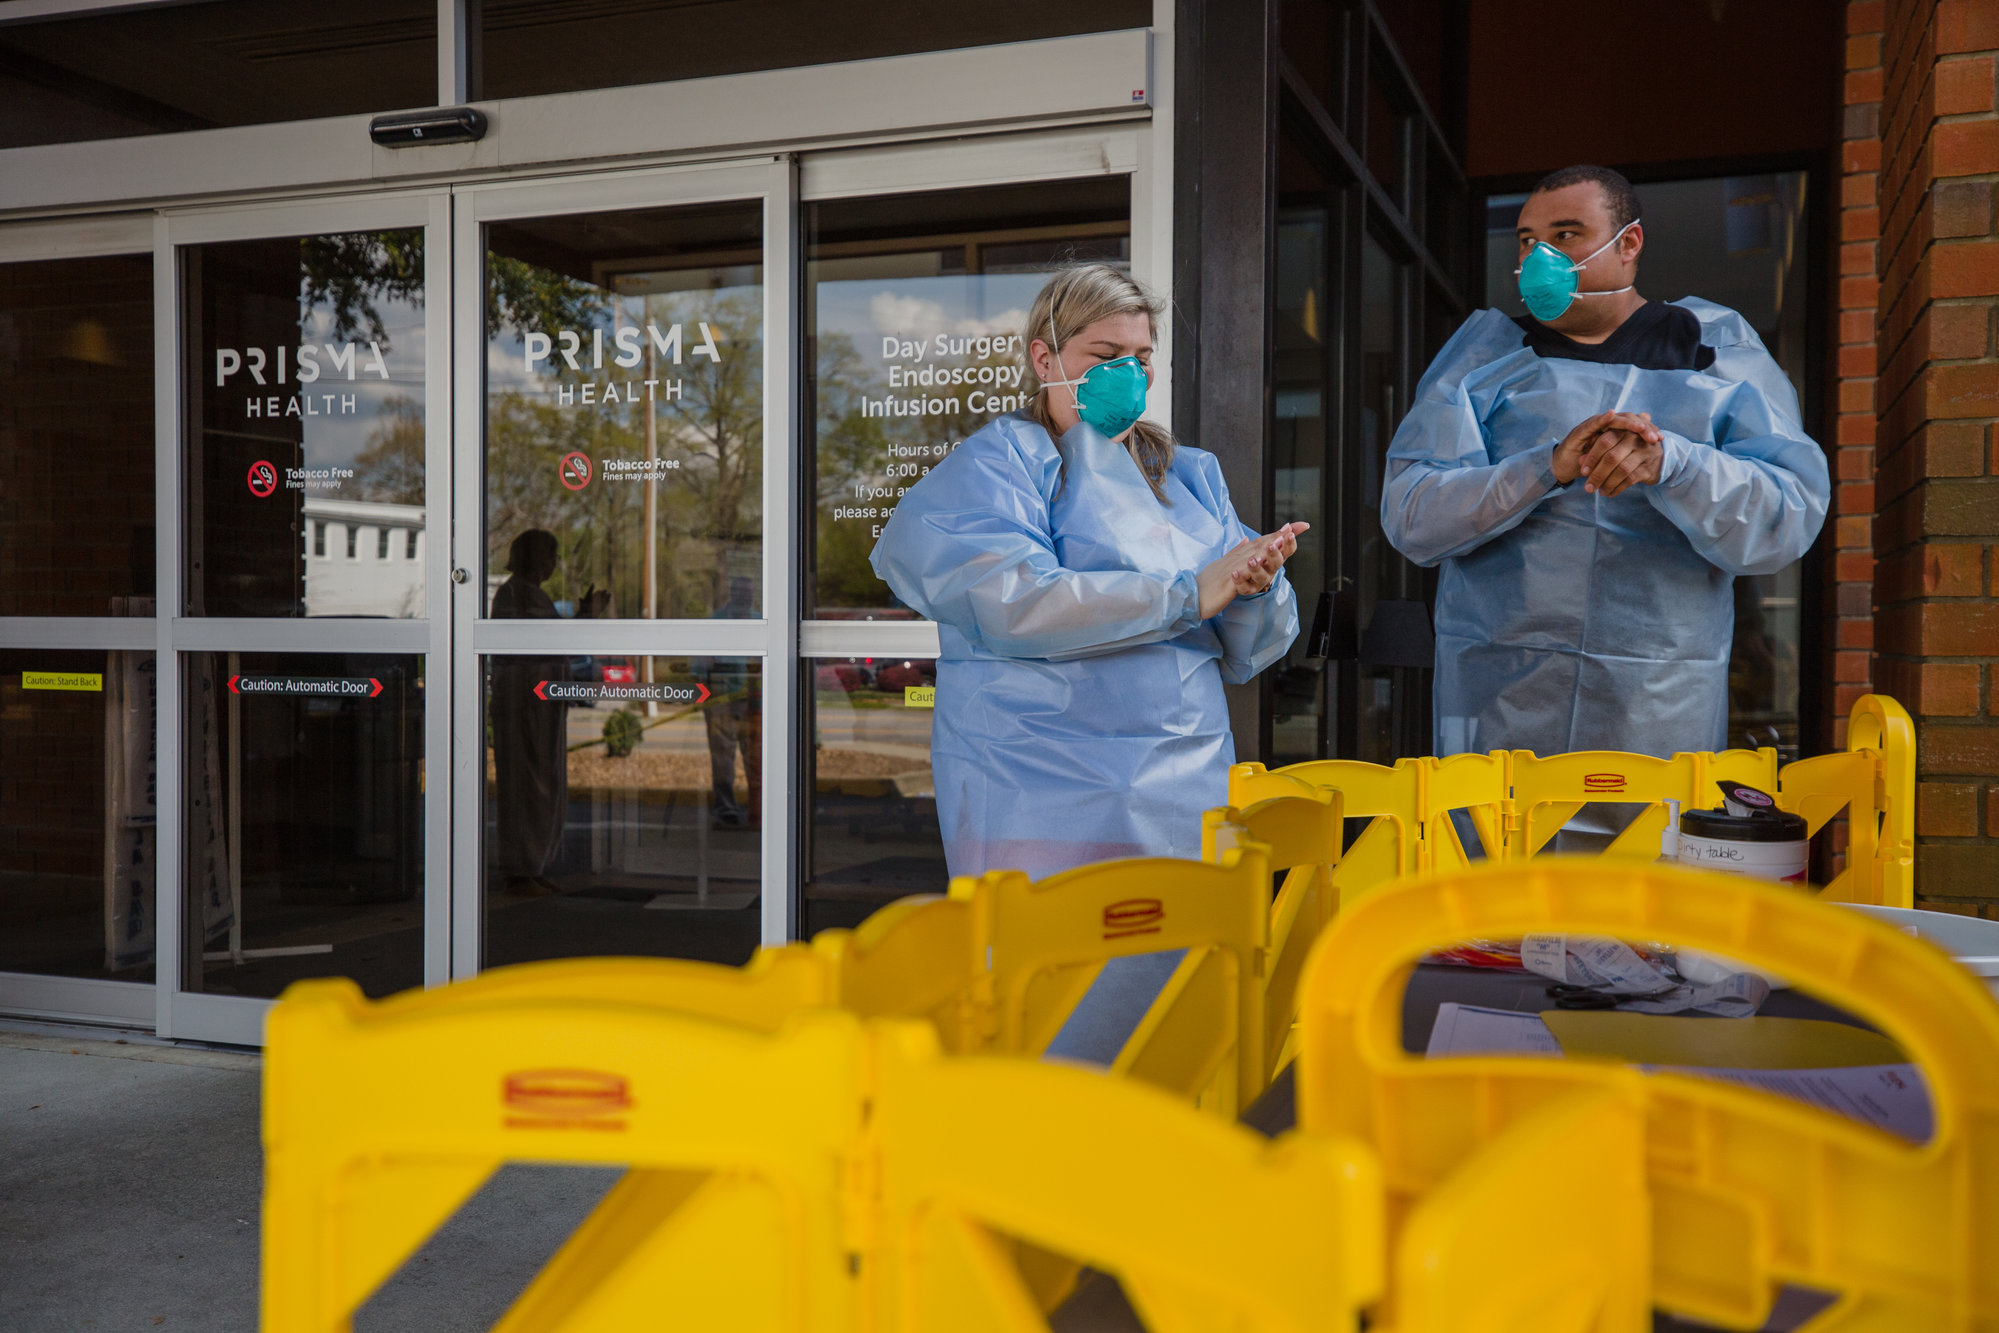 Chloe Peters, an RN at Prisma Health Tuomey Hospital, and Kyle Sanders, a BLS specialist with Prisma Health, wash up after conducting and collecting a drive-through COVID-19 test in Sumter in mid-March.